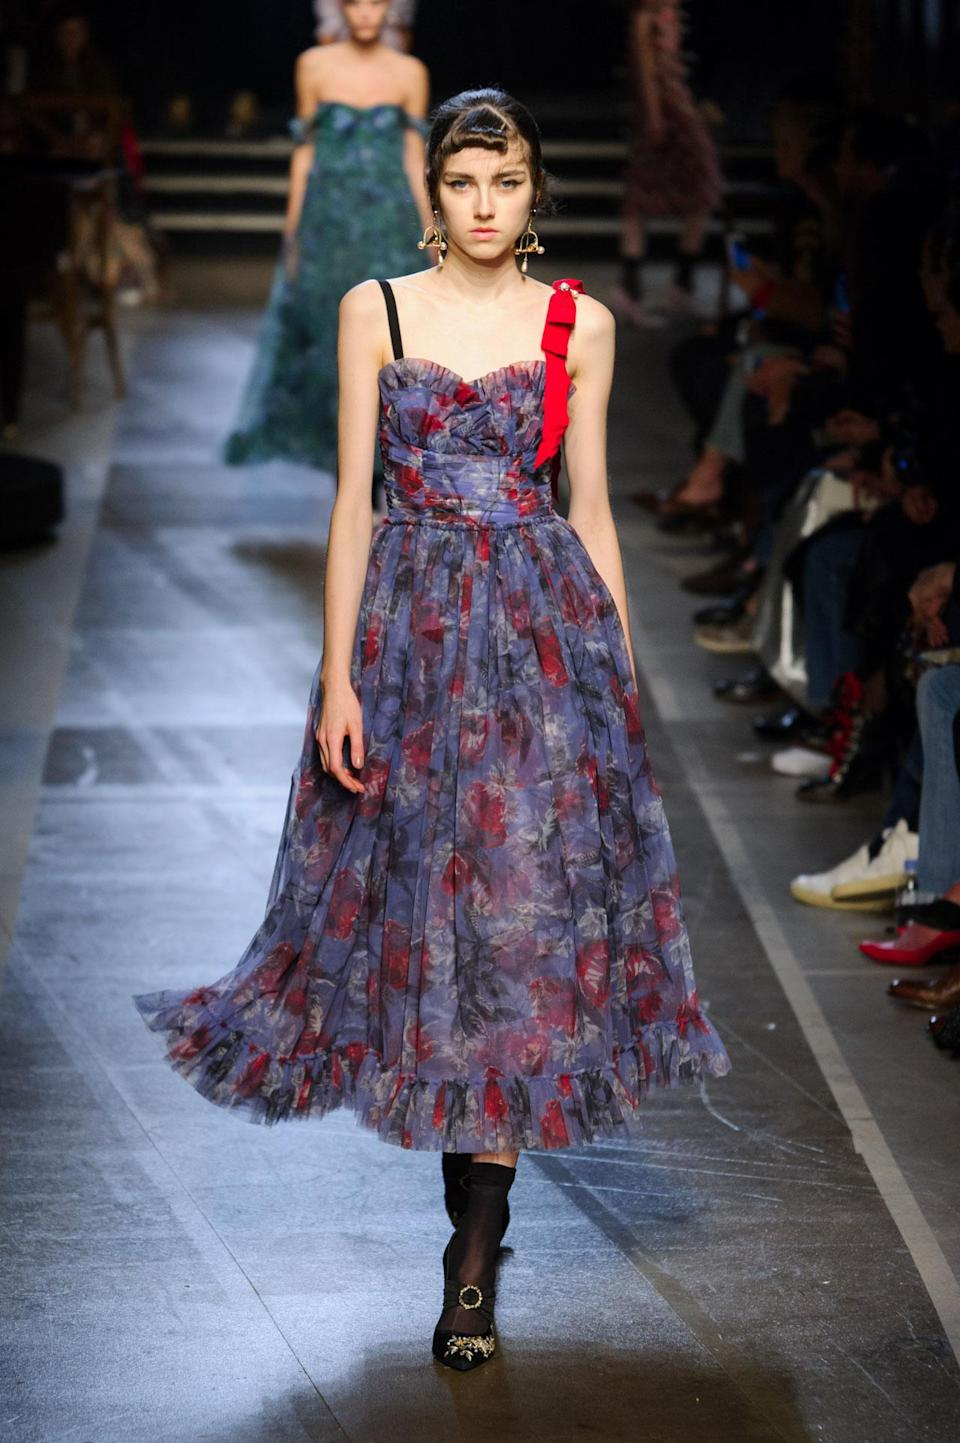 <p>Violet and red floral A-line dress from the SS18 Erdem collection. (Photo: ImaxTree) </p>